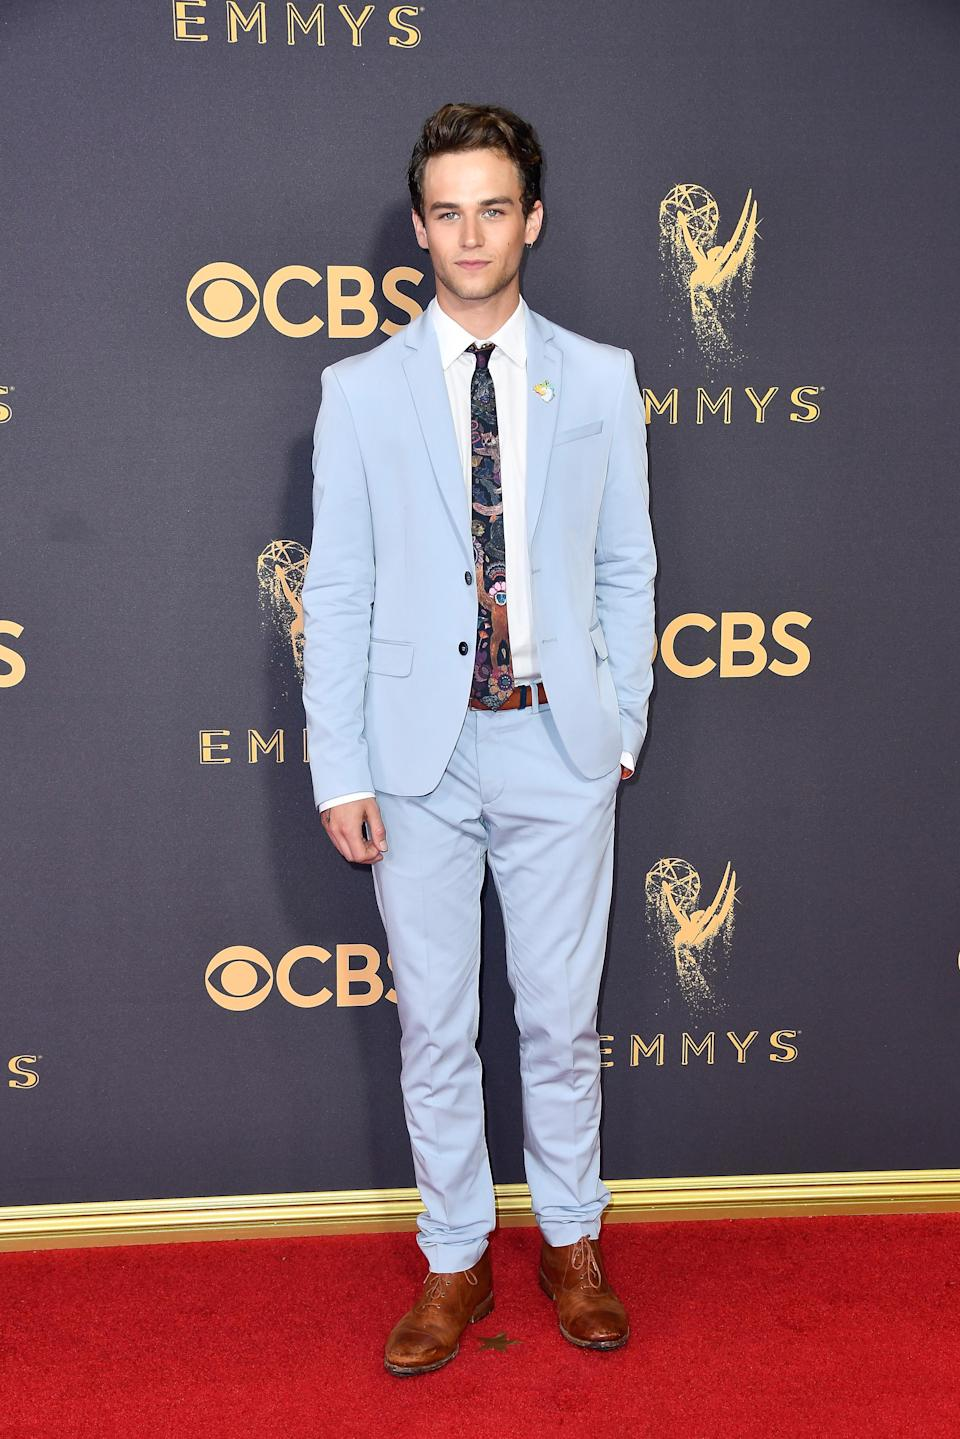 <p>Brandon Flynn attends the 69th Primetime Emmy Awards at the Microsoft Theater on Sept. 17, 2017, in Los Angeles. (Photo: Getty Images) </p>